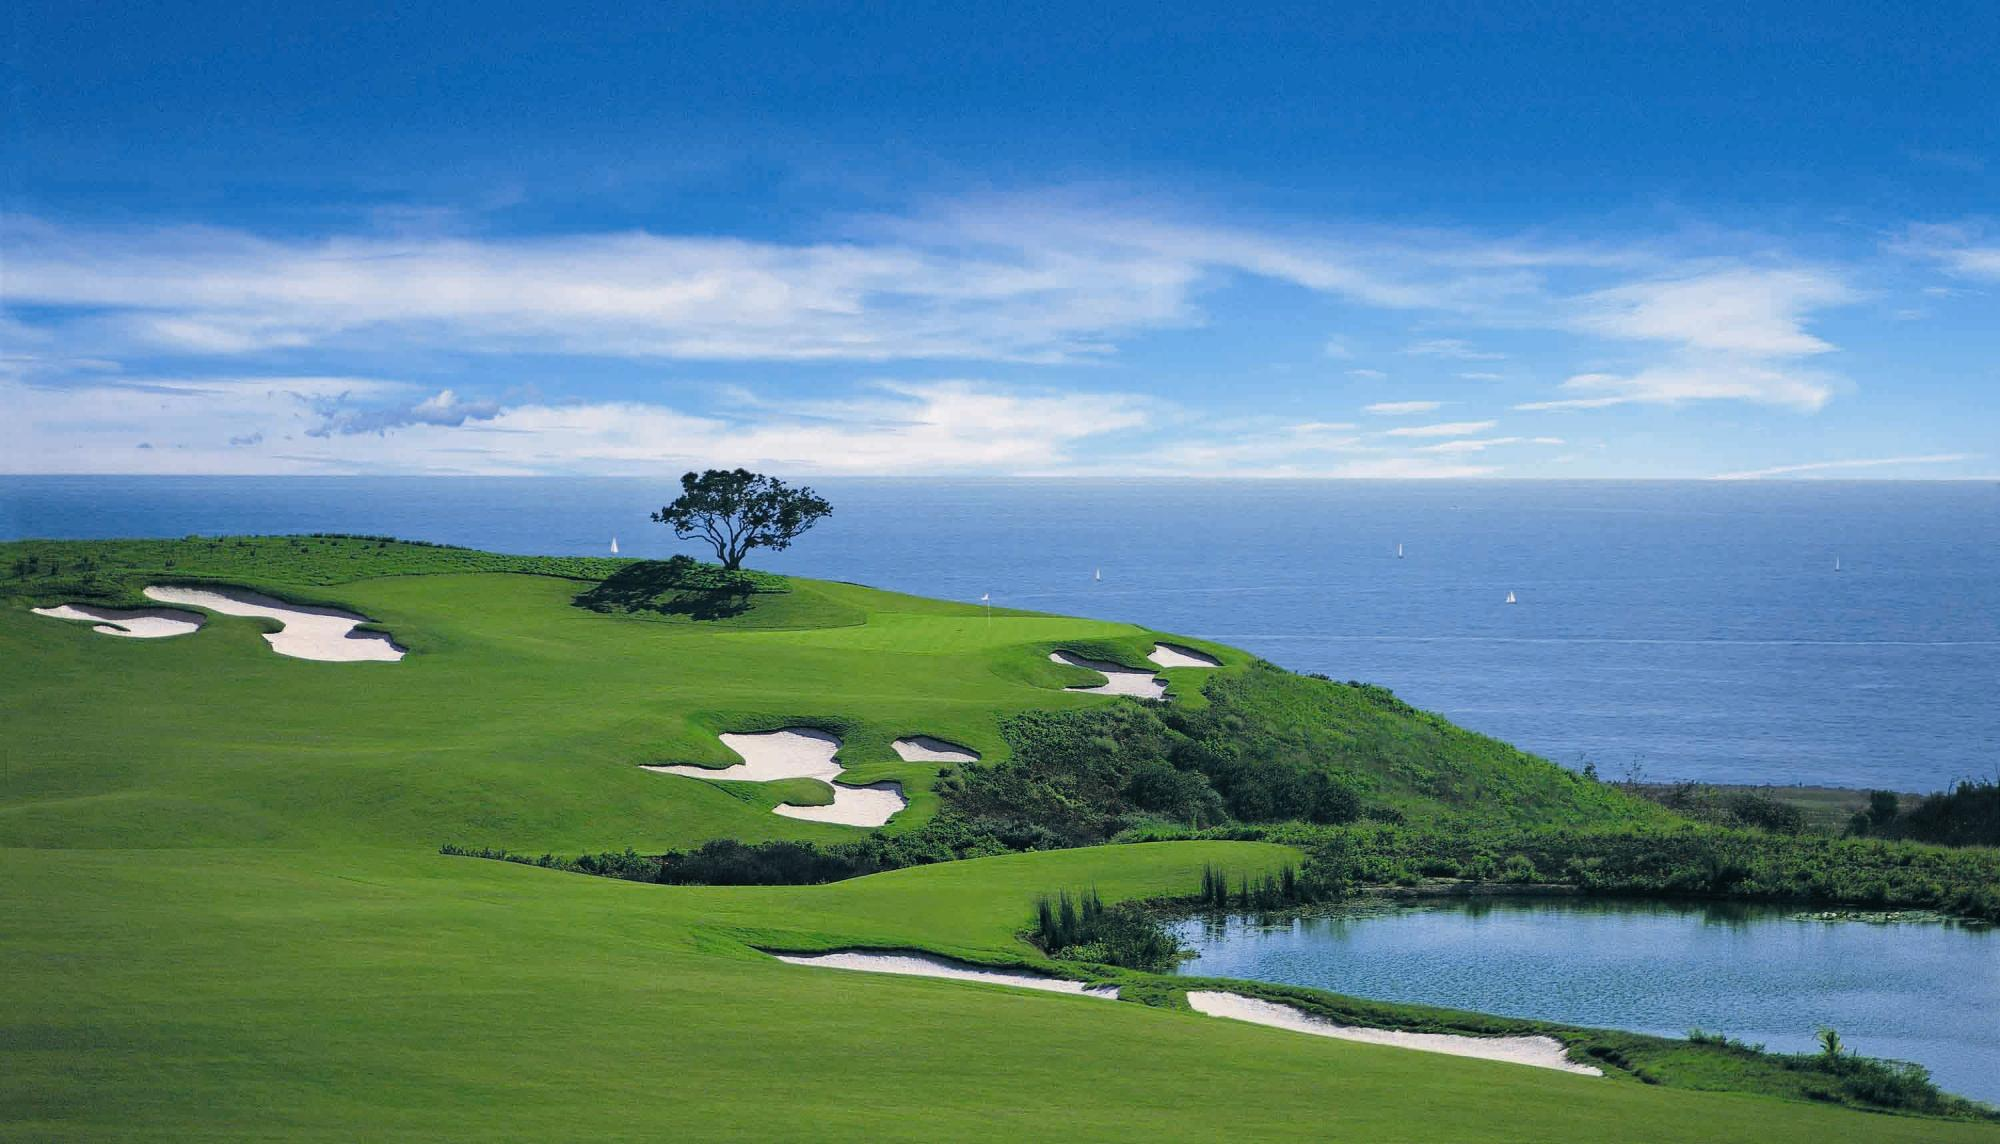 Pelican Hill Golf Club includes several of the best golf course in California